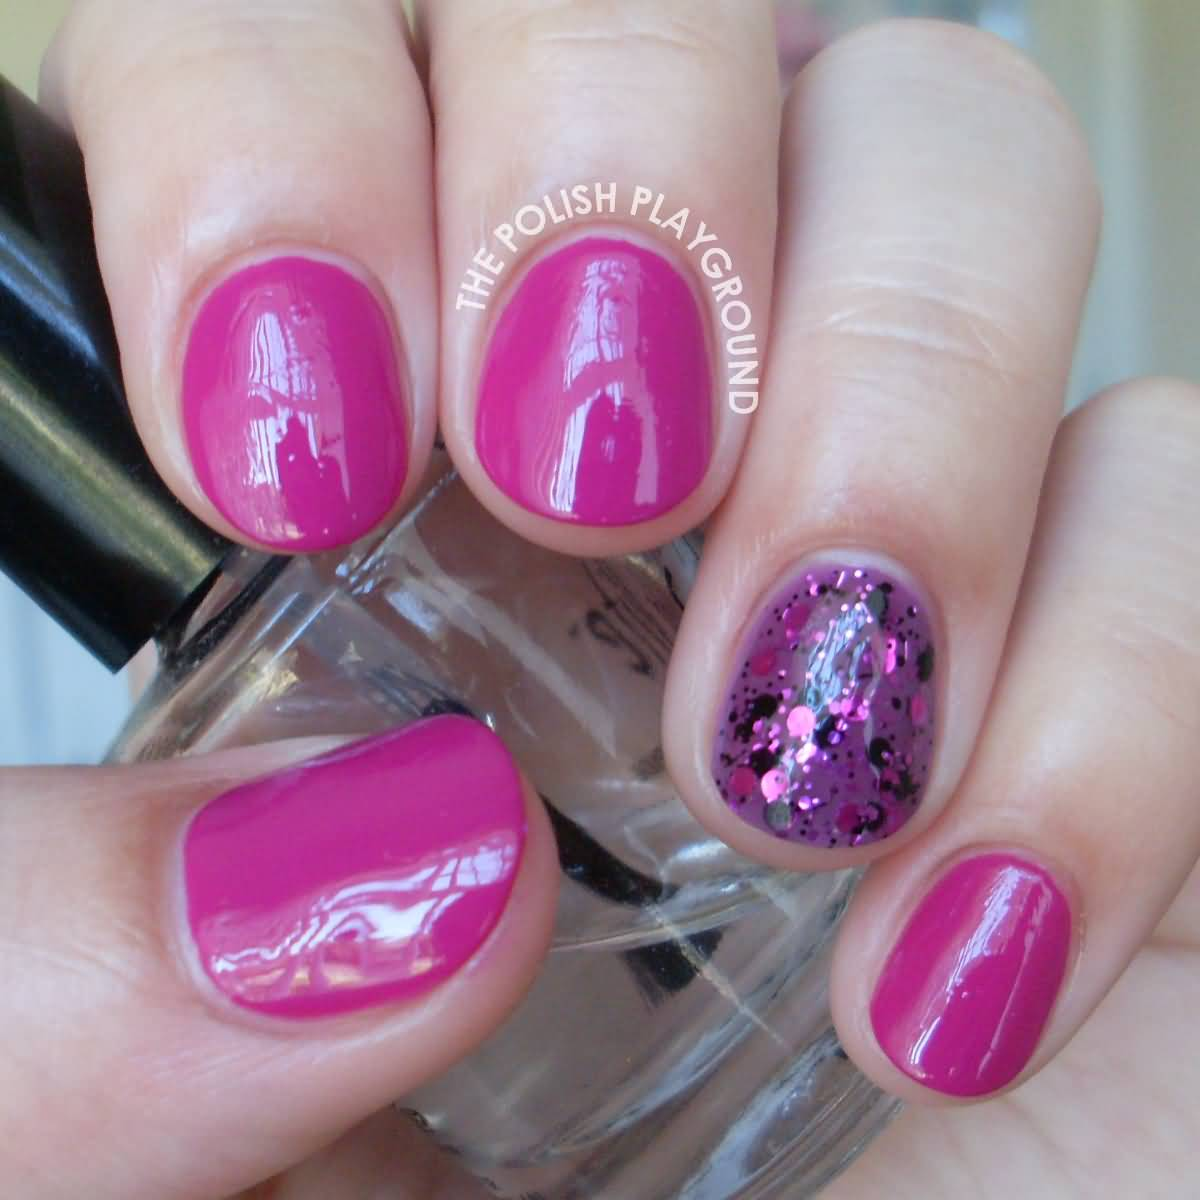 65 incredible glitter accent nail art ideas you need to try purple glitter accent nail art1 prinsesfo Gallery